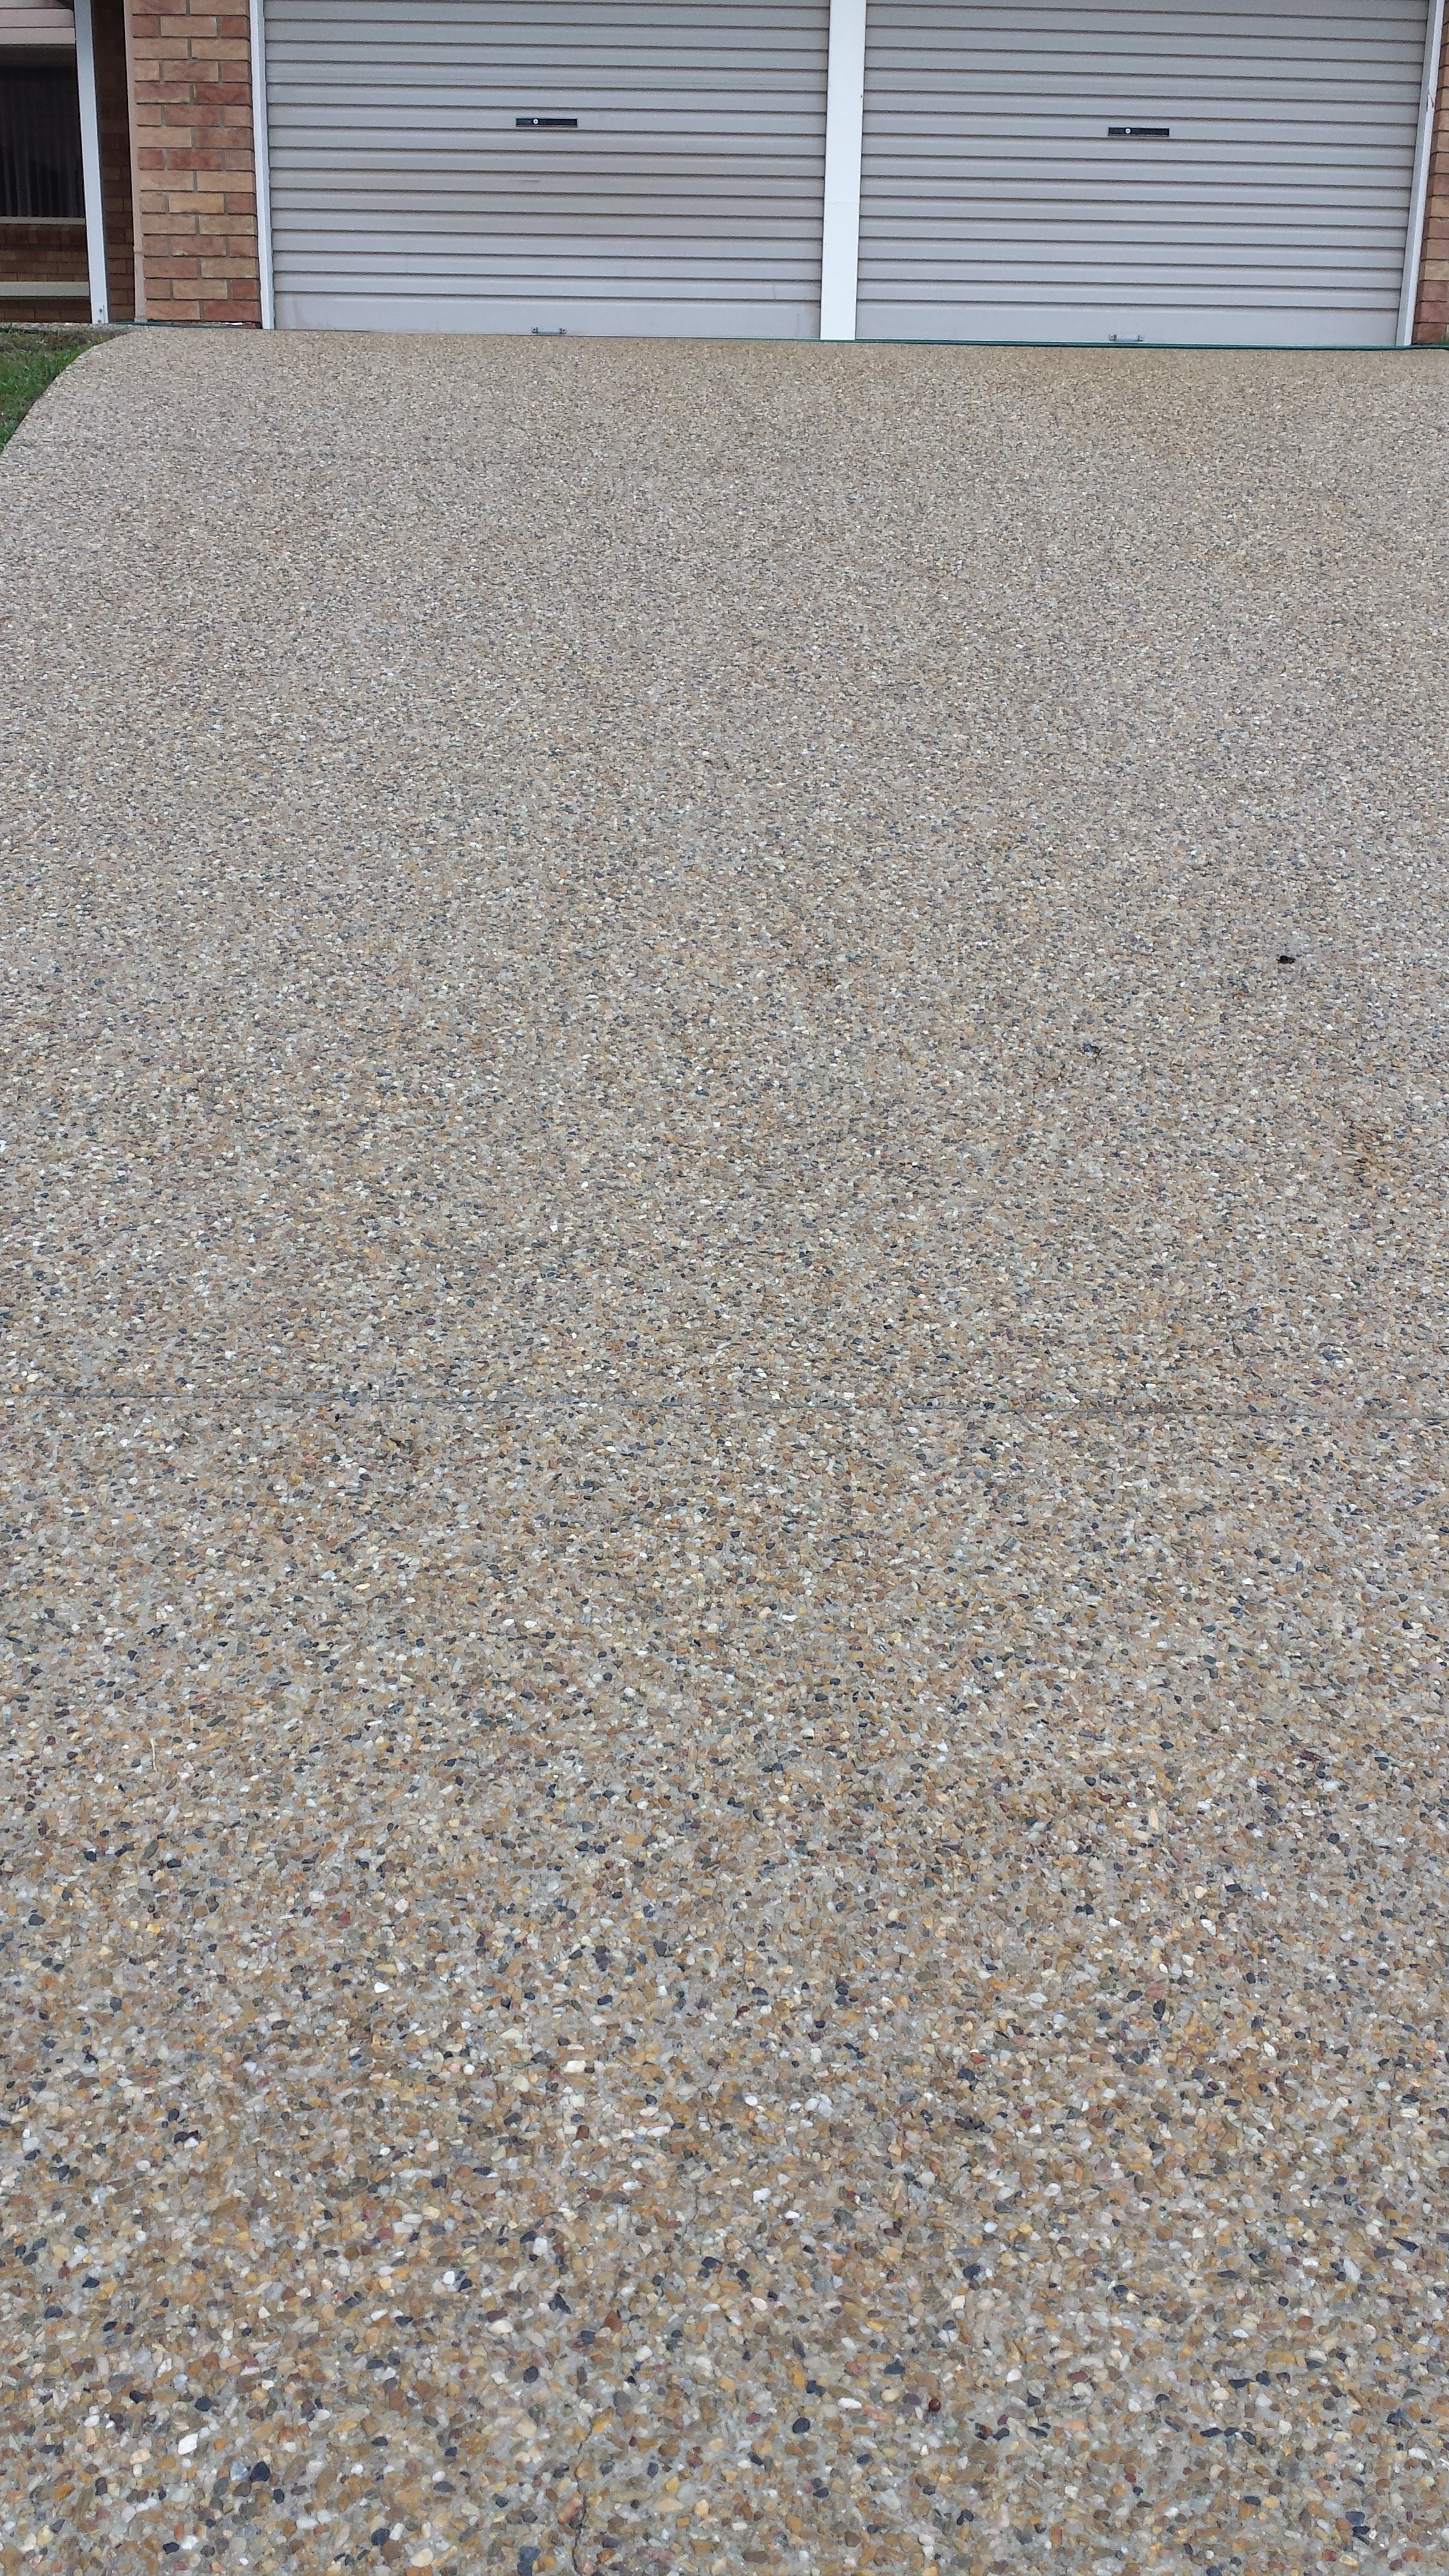 Driveway cleaning services in Queensland